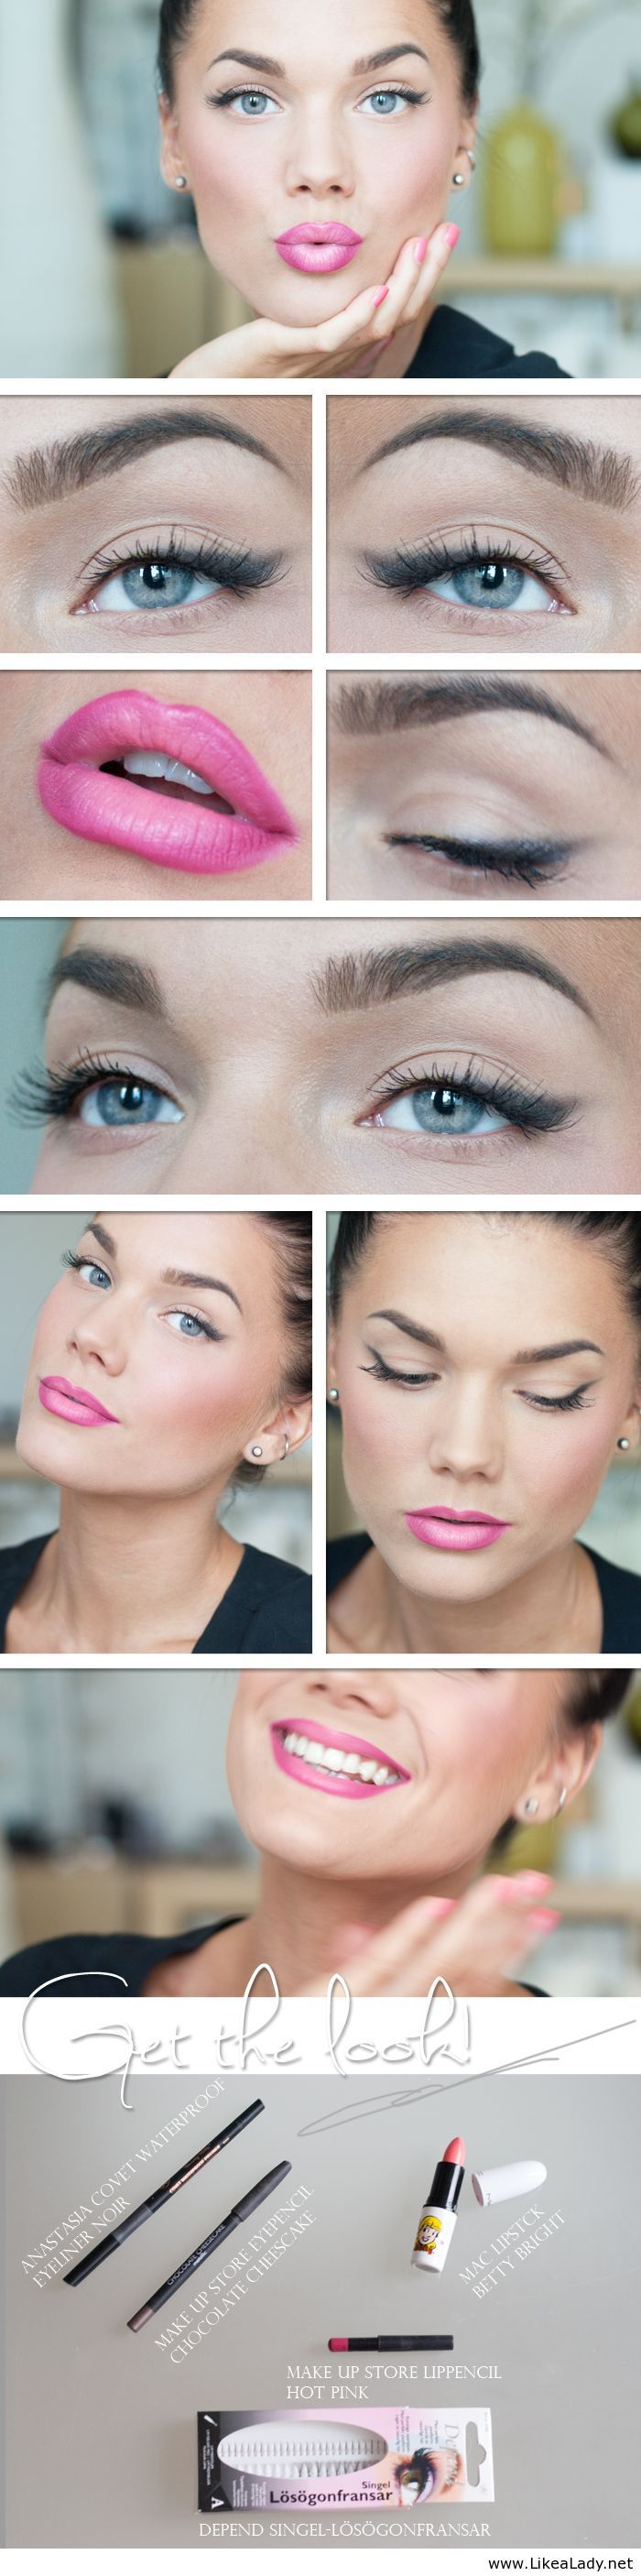 See best makeup tutorial on http://pinmakeuptips.com/how-to-achieve-the-false-eyelash-look/